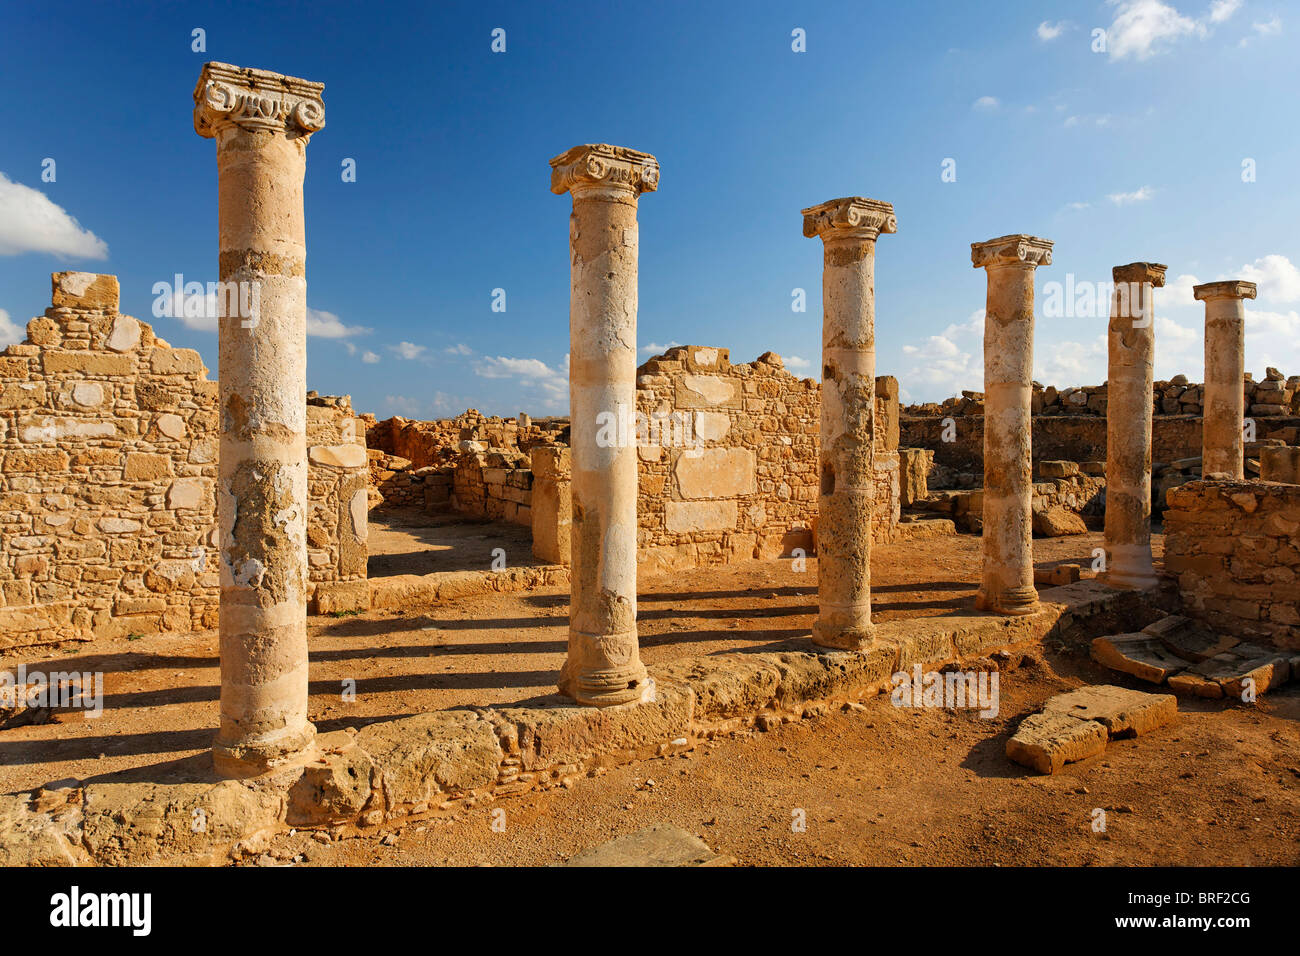 Ancient Greek columns in ancient walls, excavation site, UNESCO World Heritage Site, Kato, Paphos, Pafos, Cyprus, - Stock Image